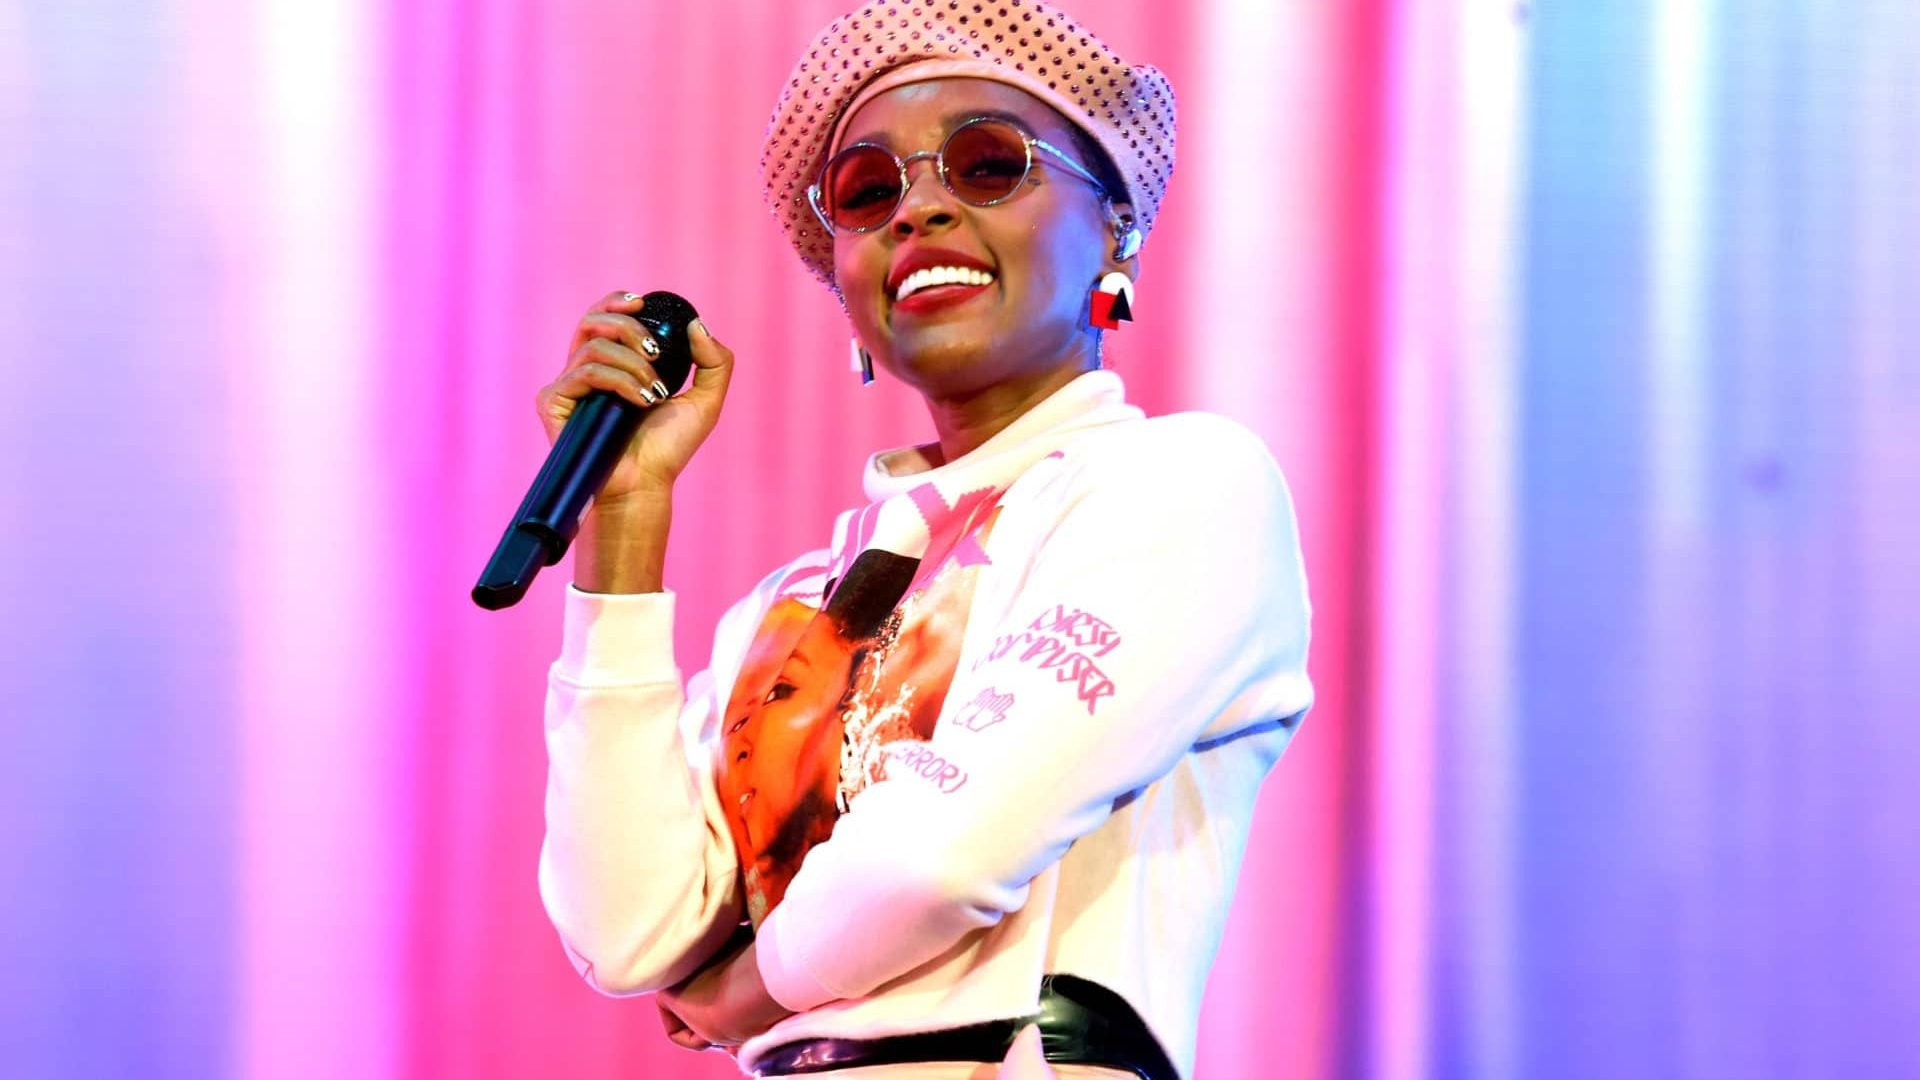 A Friendly Reminder From Janelle Monáe That Women Have Agency Over Our Own Bodies